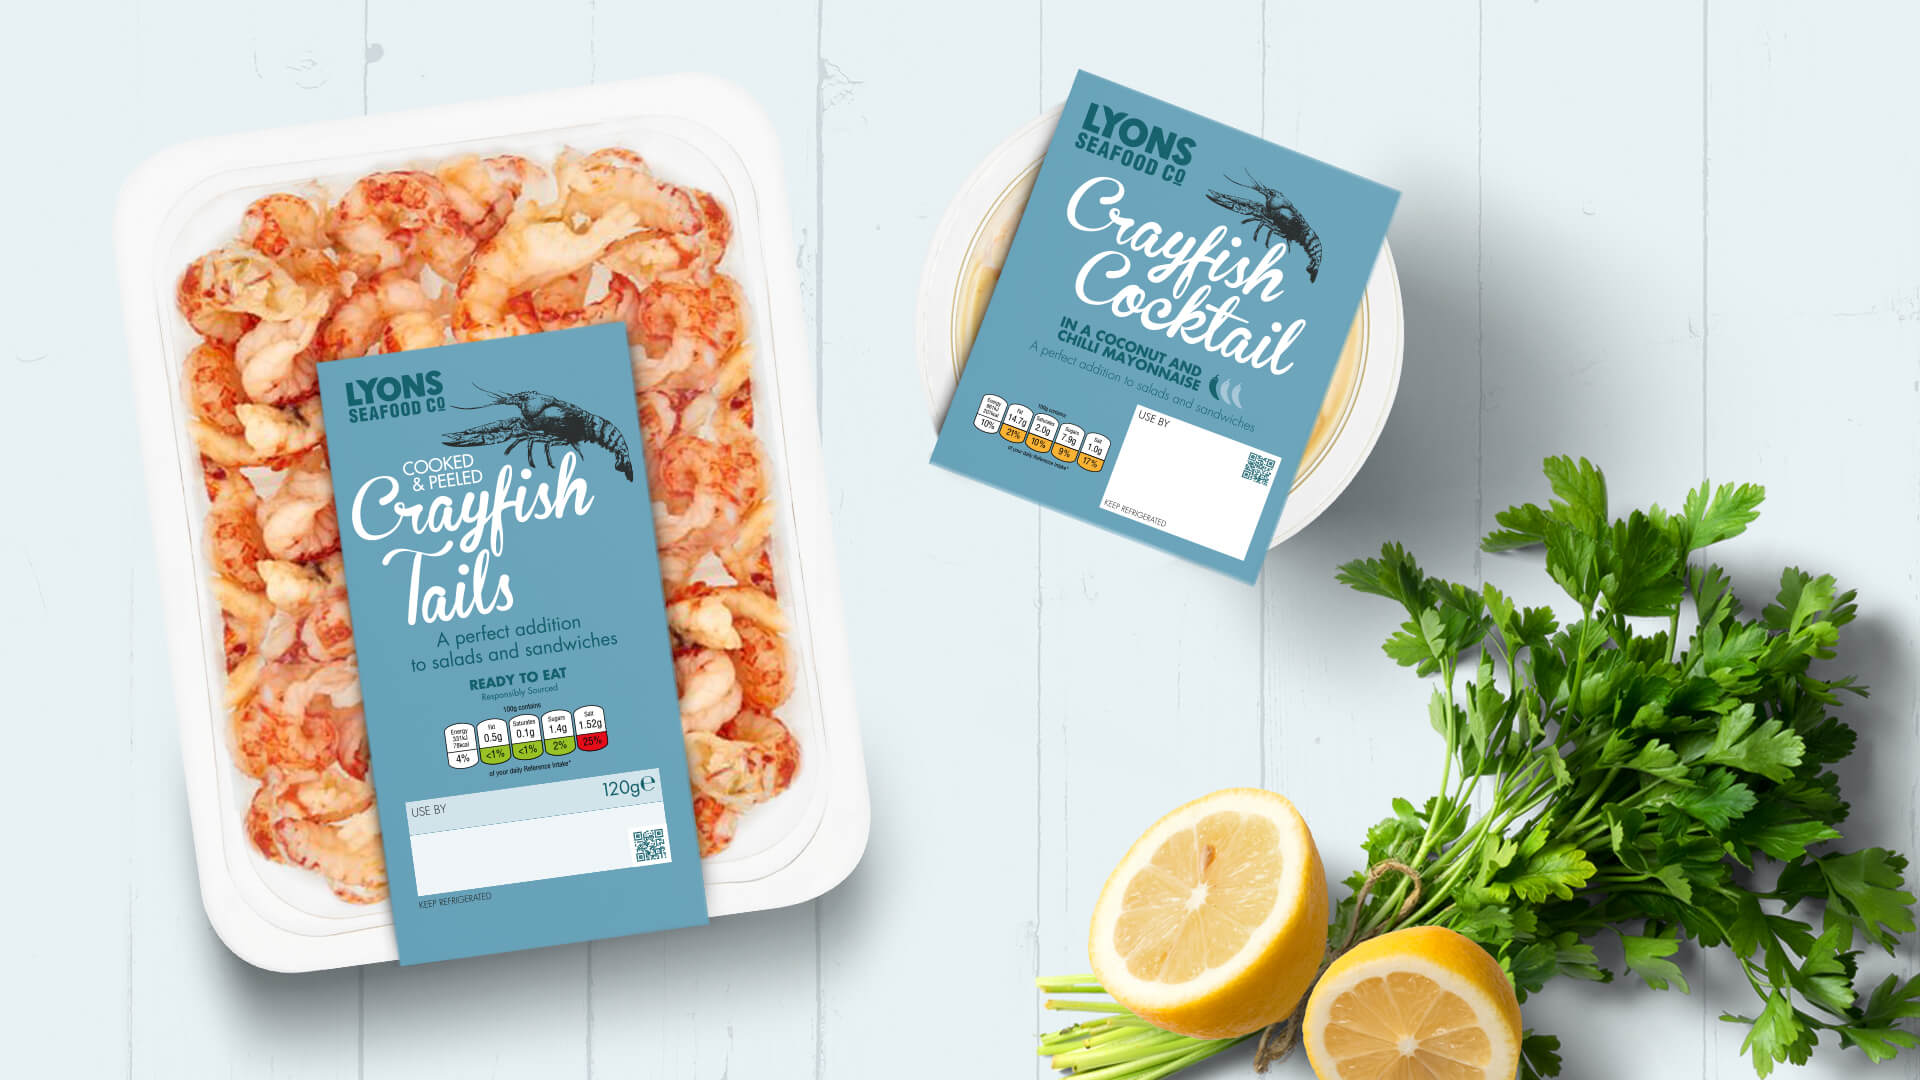 Lyons Seafood Co Branding and Packaging Design